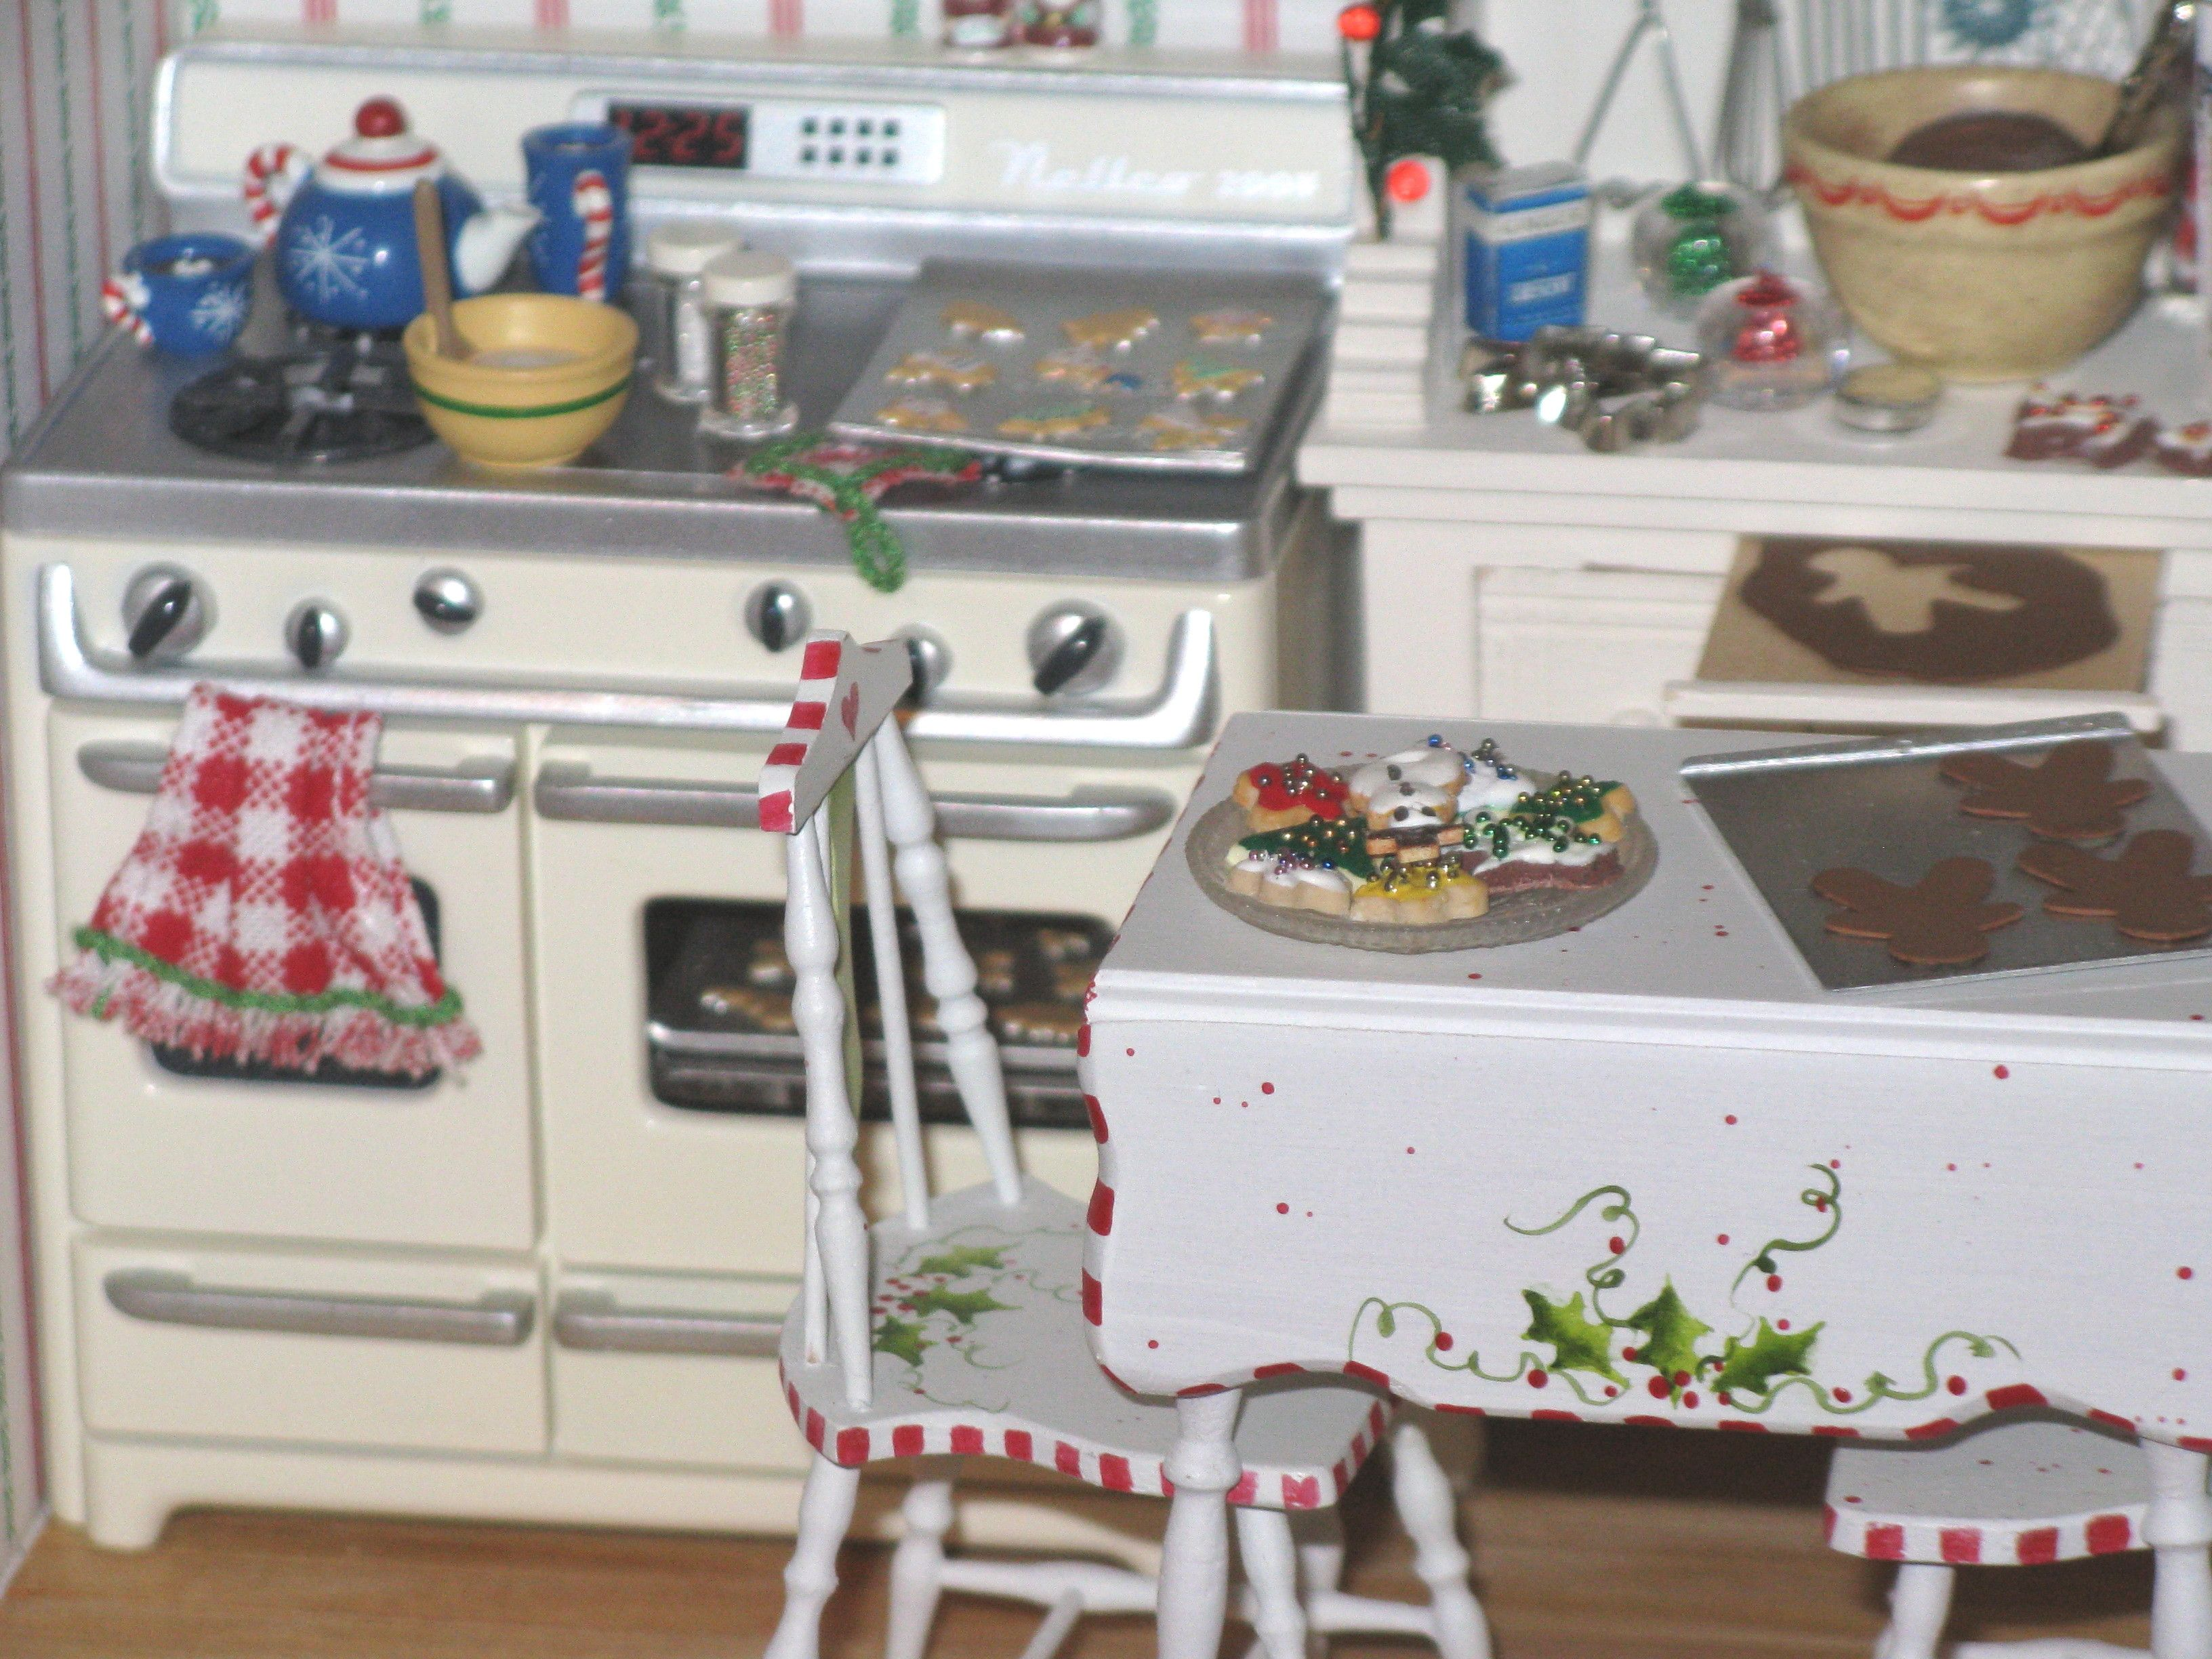 Kitchen Ornament Christmas Kitchen The Stove Is A Hallmark Christmas Ornament